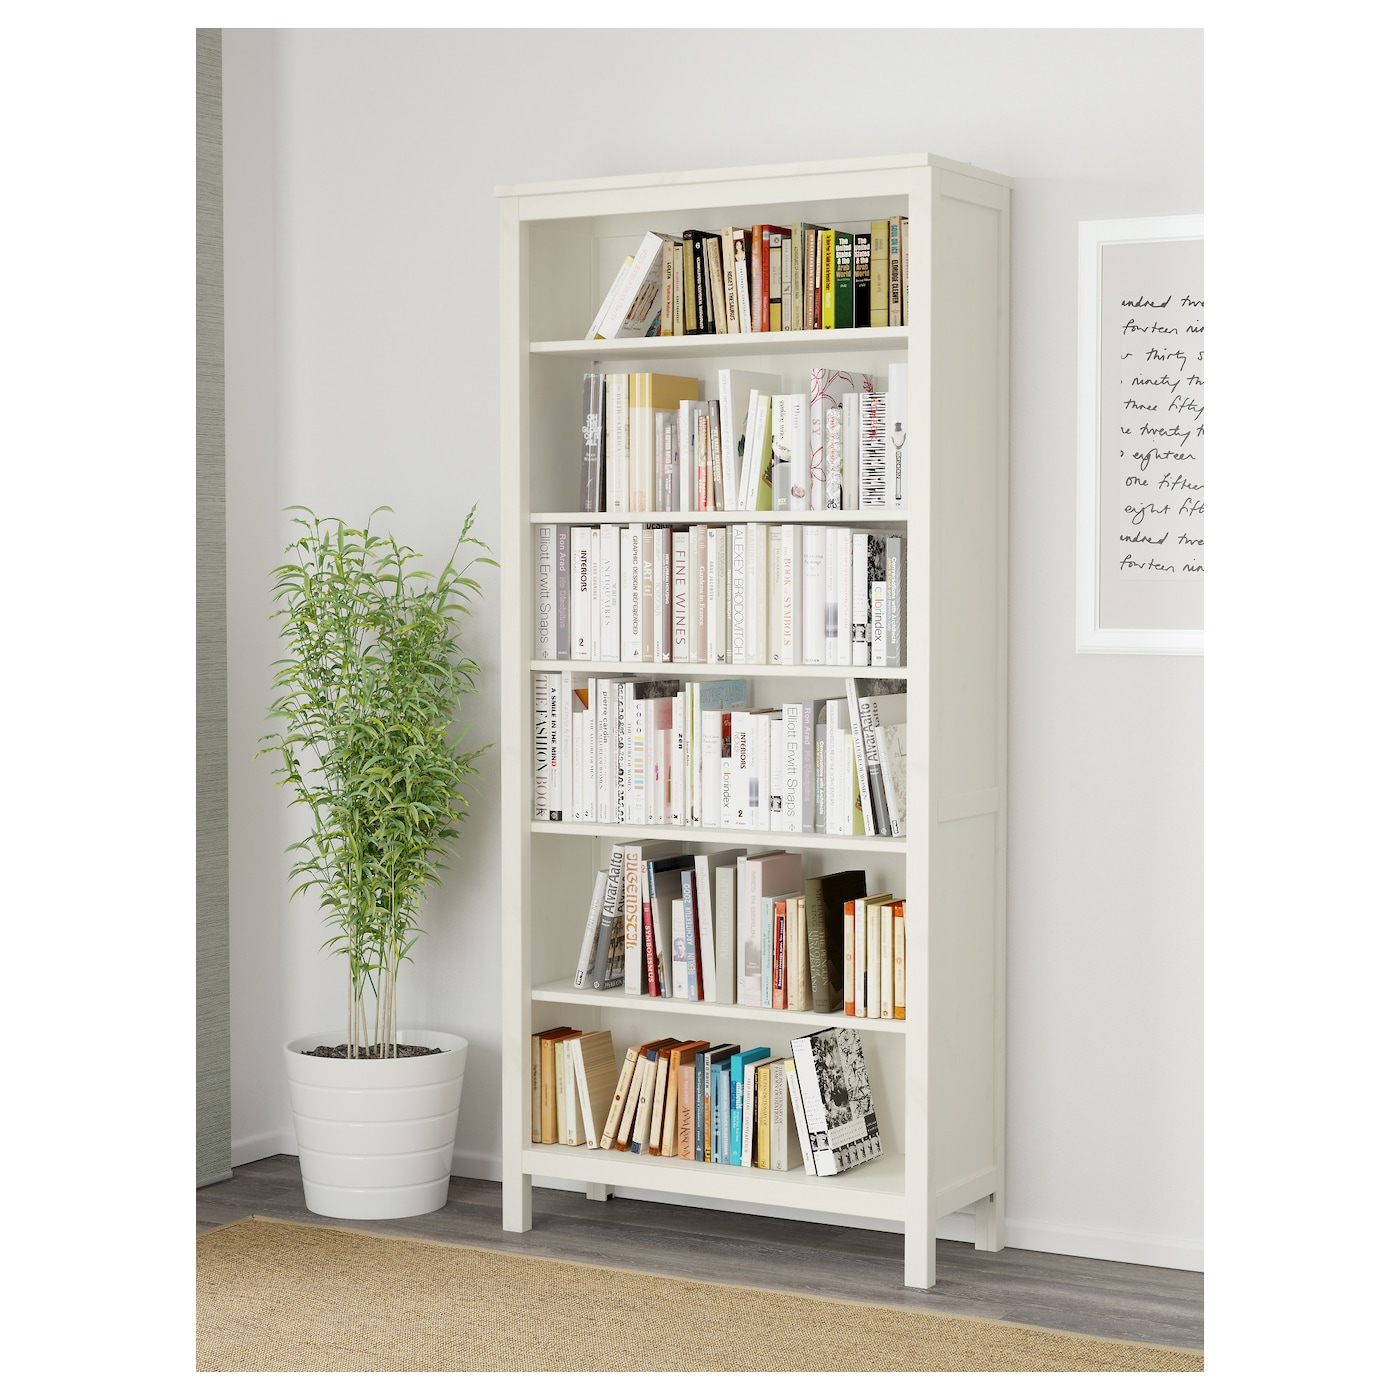 Ikea hemnes bookcase solid wood has a natural feel 1 fixed shelf for high stability